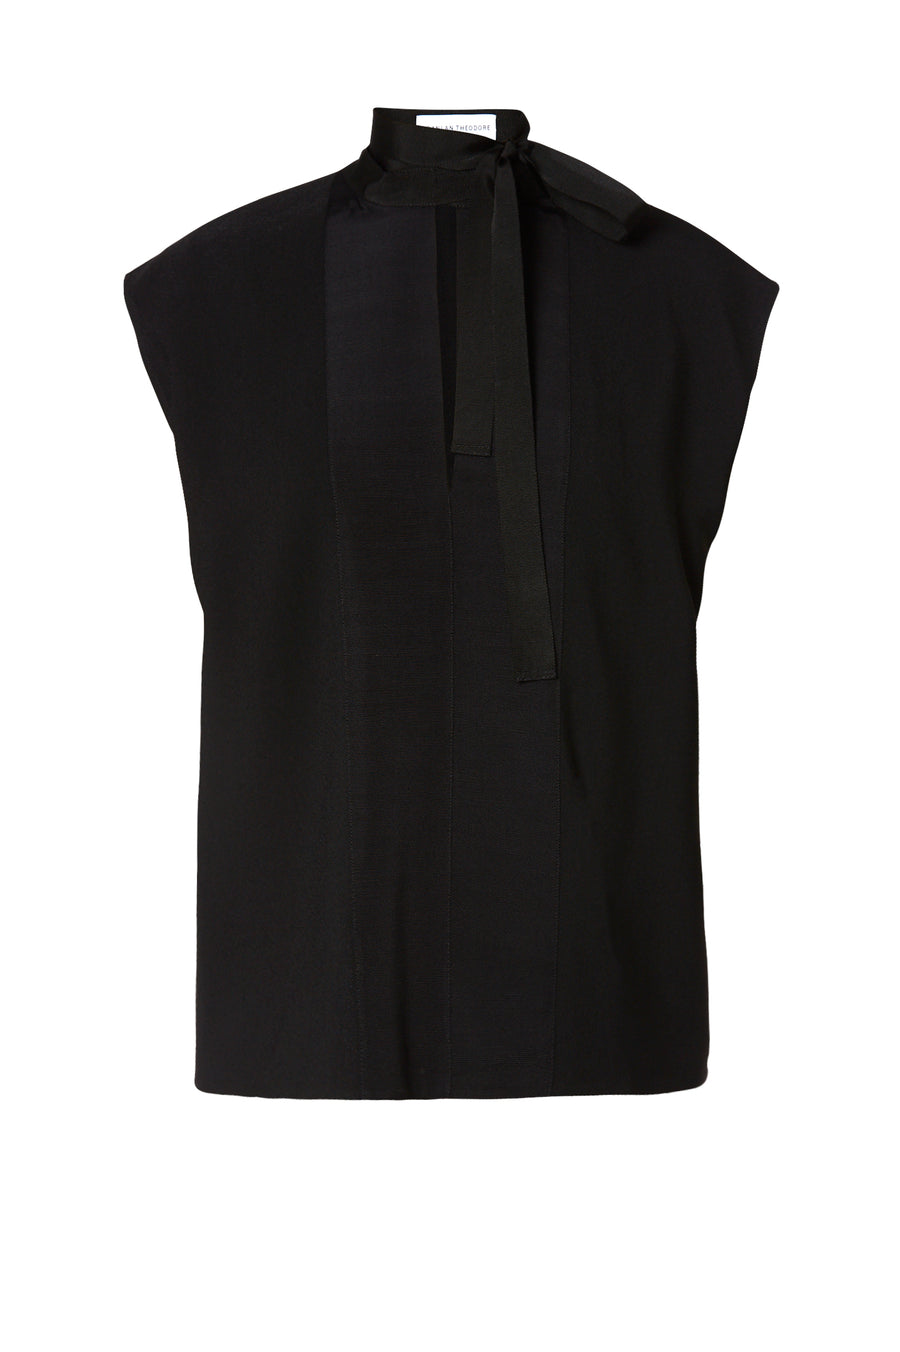 Crepe Tie Neck Tank is made from an Italian plant based fabric, tie neck, short sleeve, color black